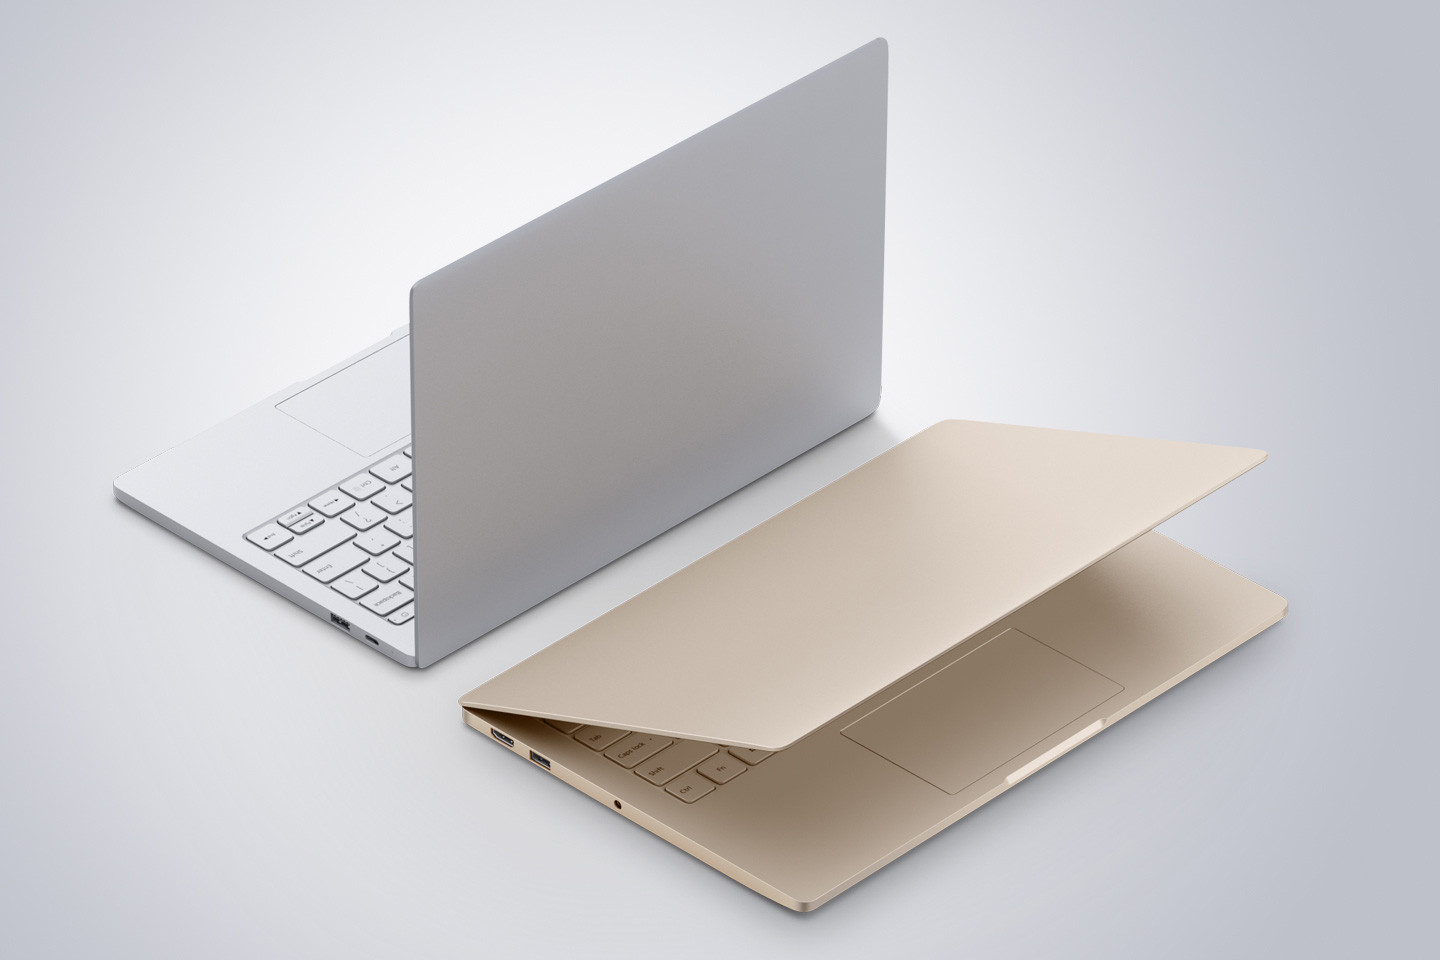 Xiaomi unveils Macbook Air competitor, the 13.3 and 12.5inch Mi